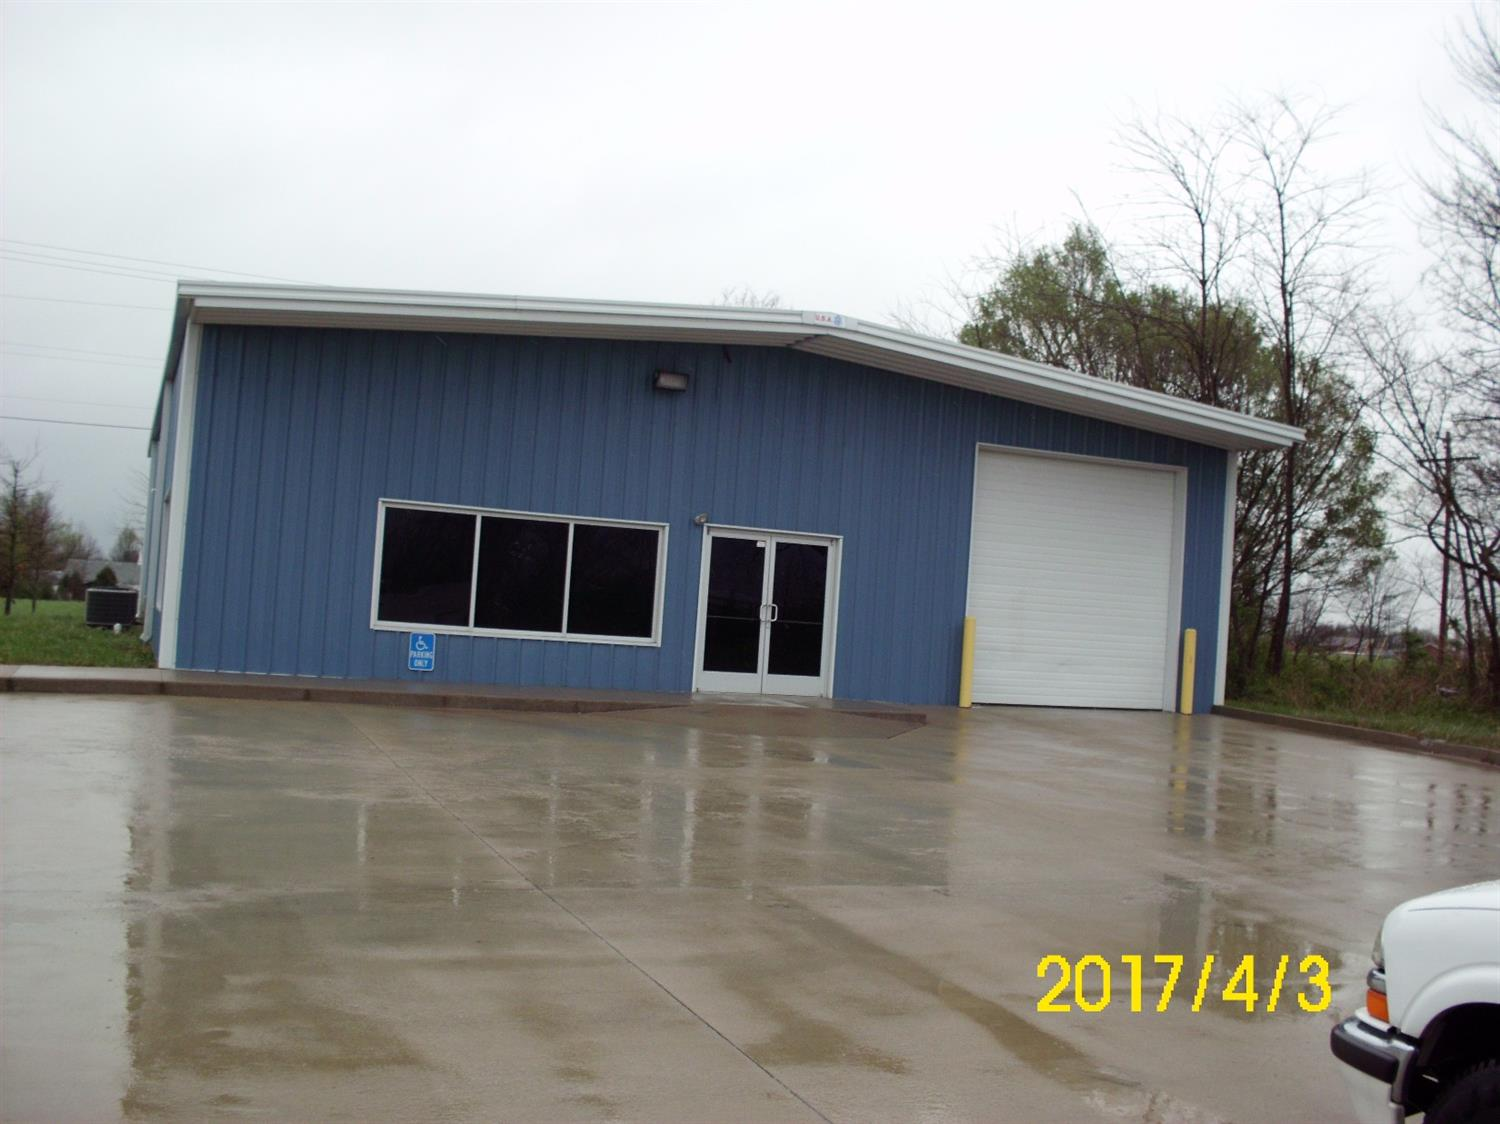 Beautiful%20warehouse%20with%20drive%20in%20door%20in%20industrial%20park%20in%20Berea.%20Building%20has%20insulated%20walls%20and%20ceilings.%20Plenty%20of%20parking%20and%20only%20a%20couple%20minutes%20away%20from%20I-75.%20Call%20today%20for%20your%20private%20showing.